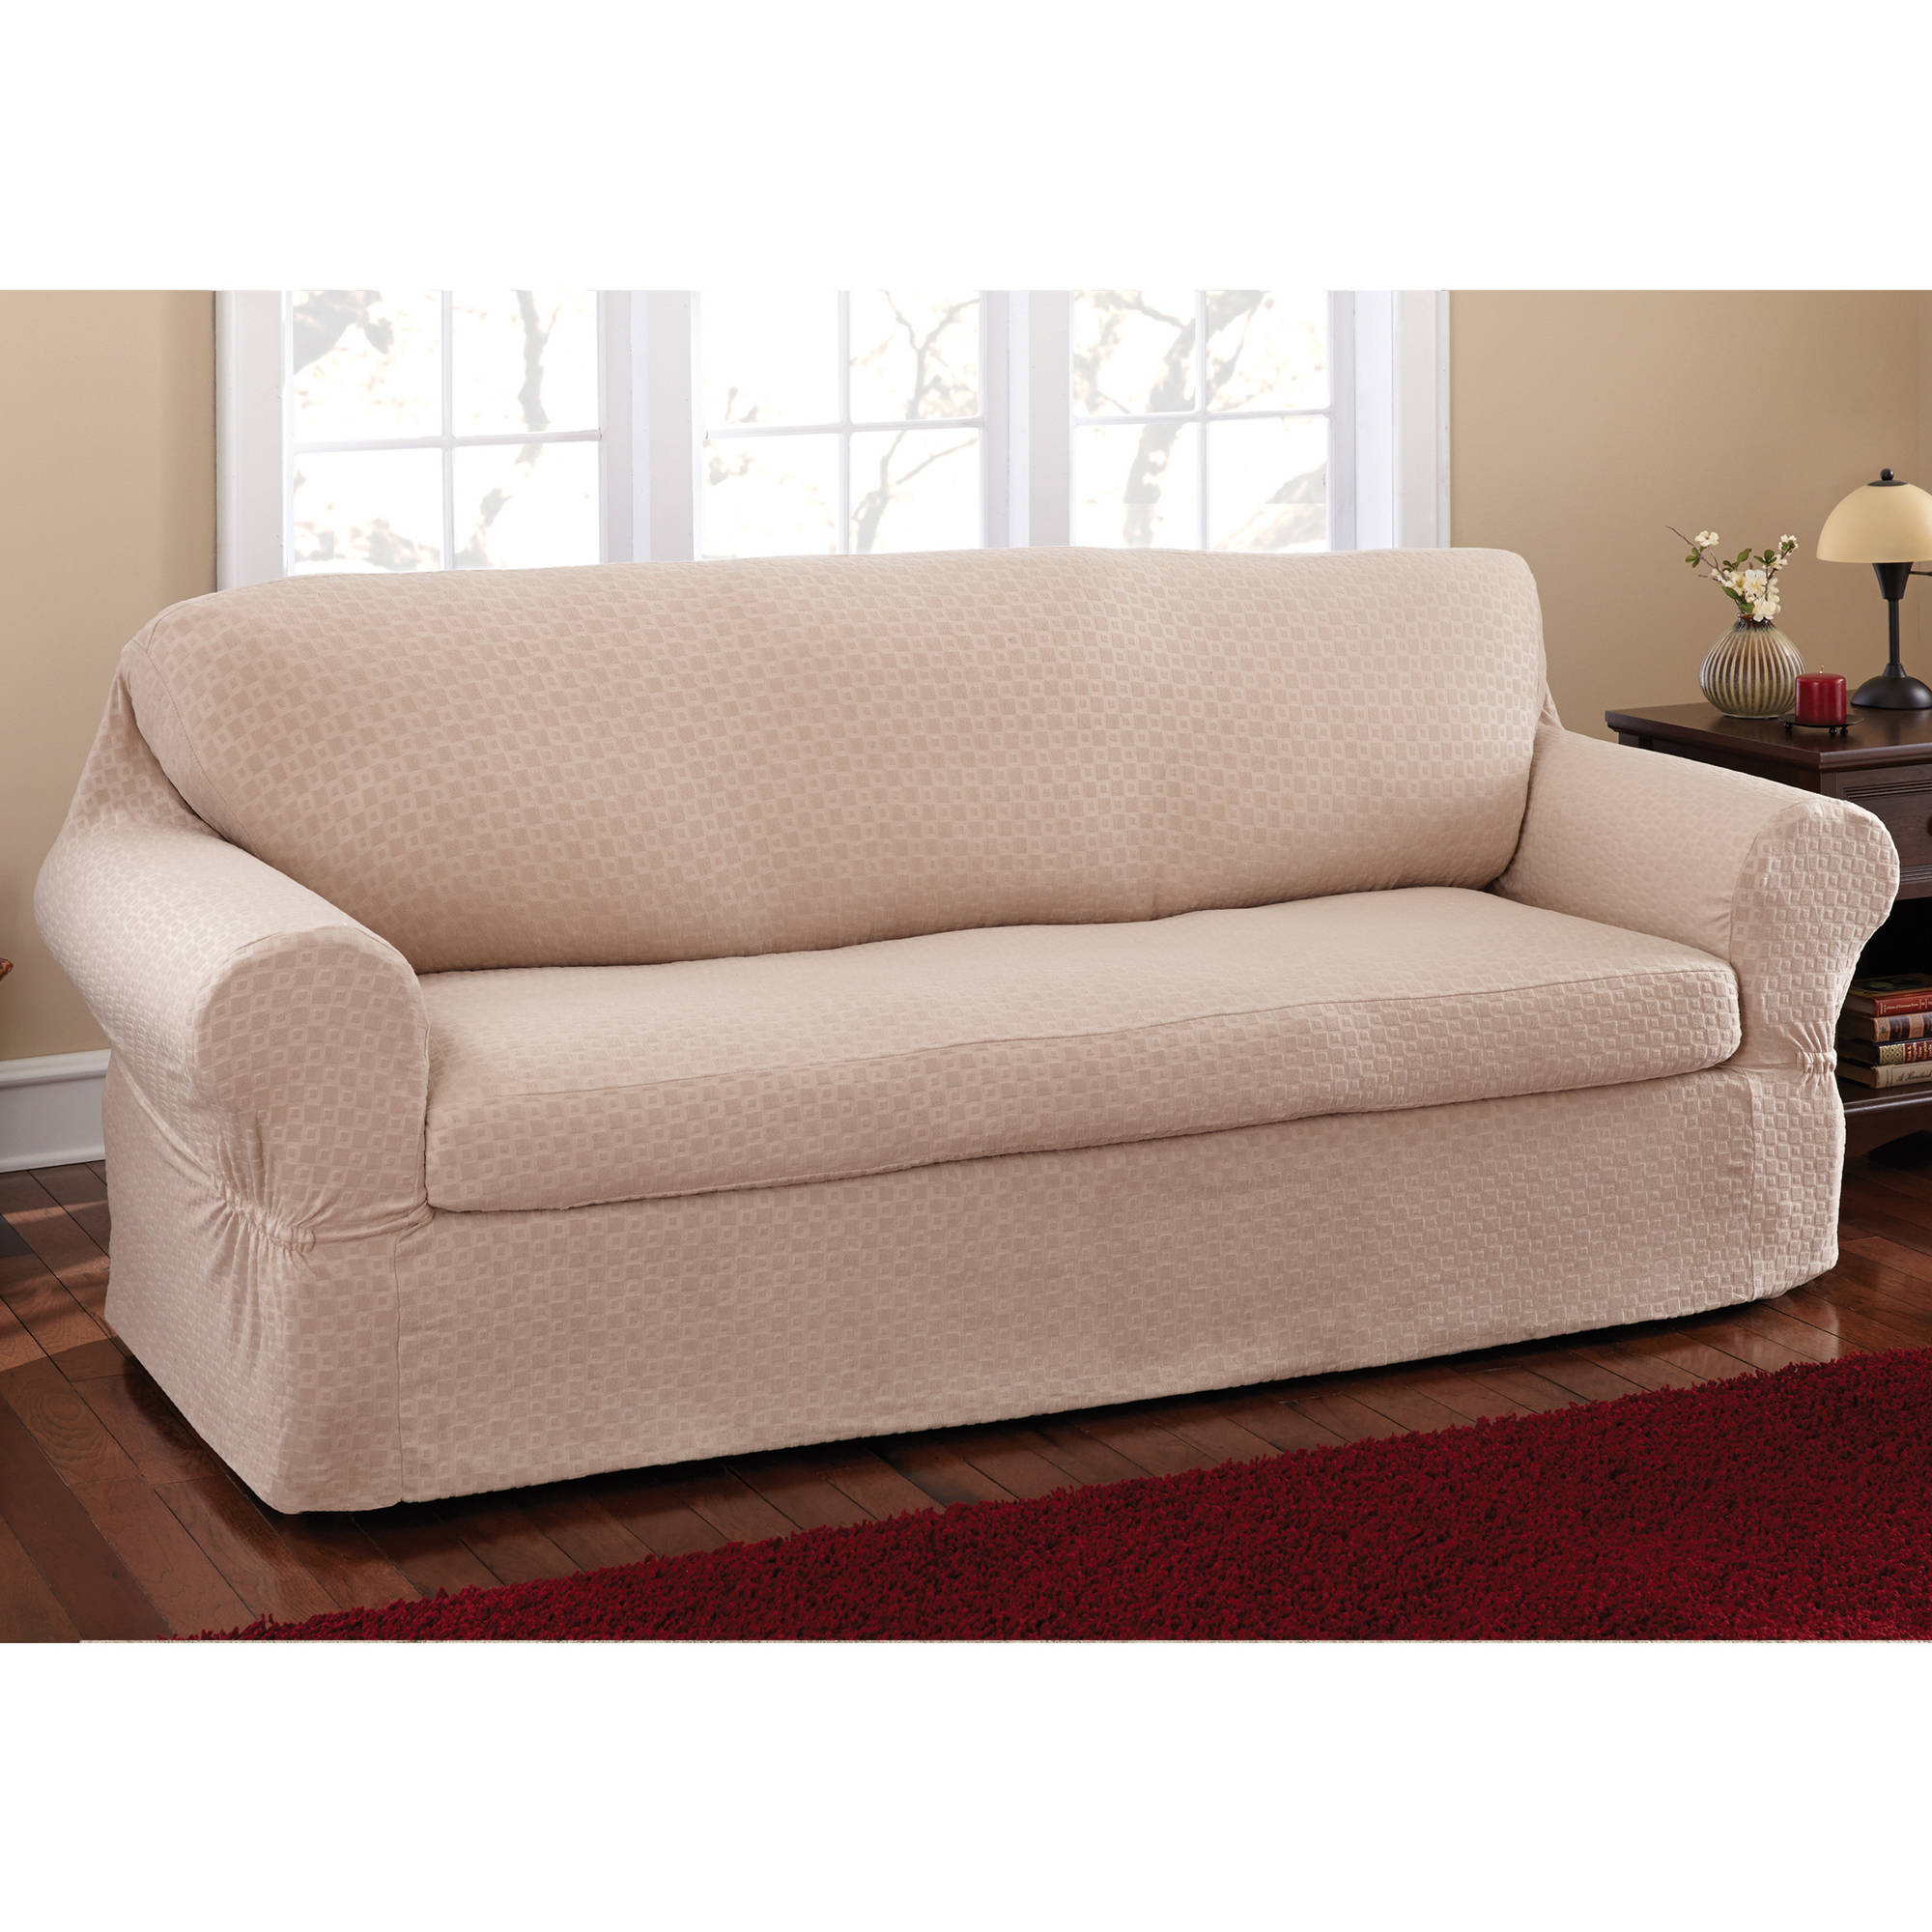 Slipcover Sofa Set: Mainstays Conrad 2 Piece Sofa Slipcover